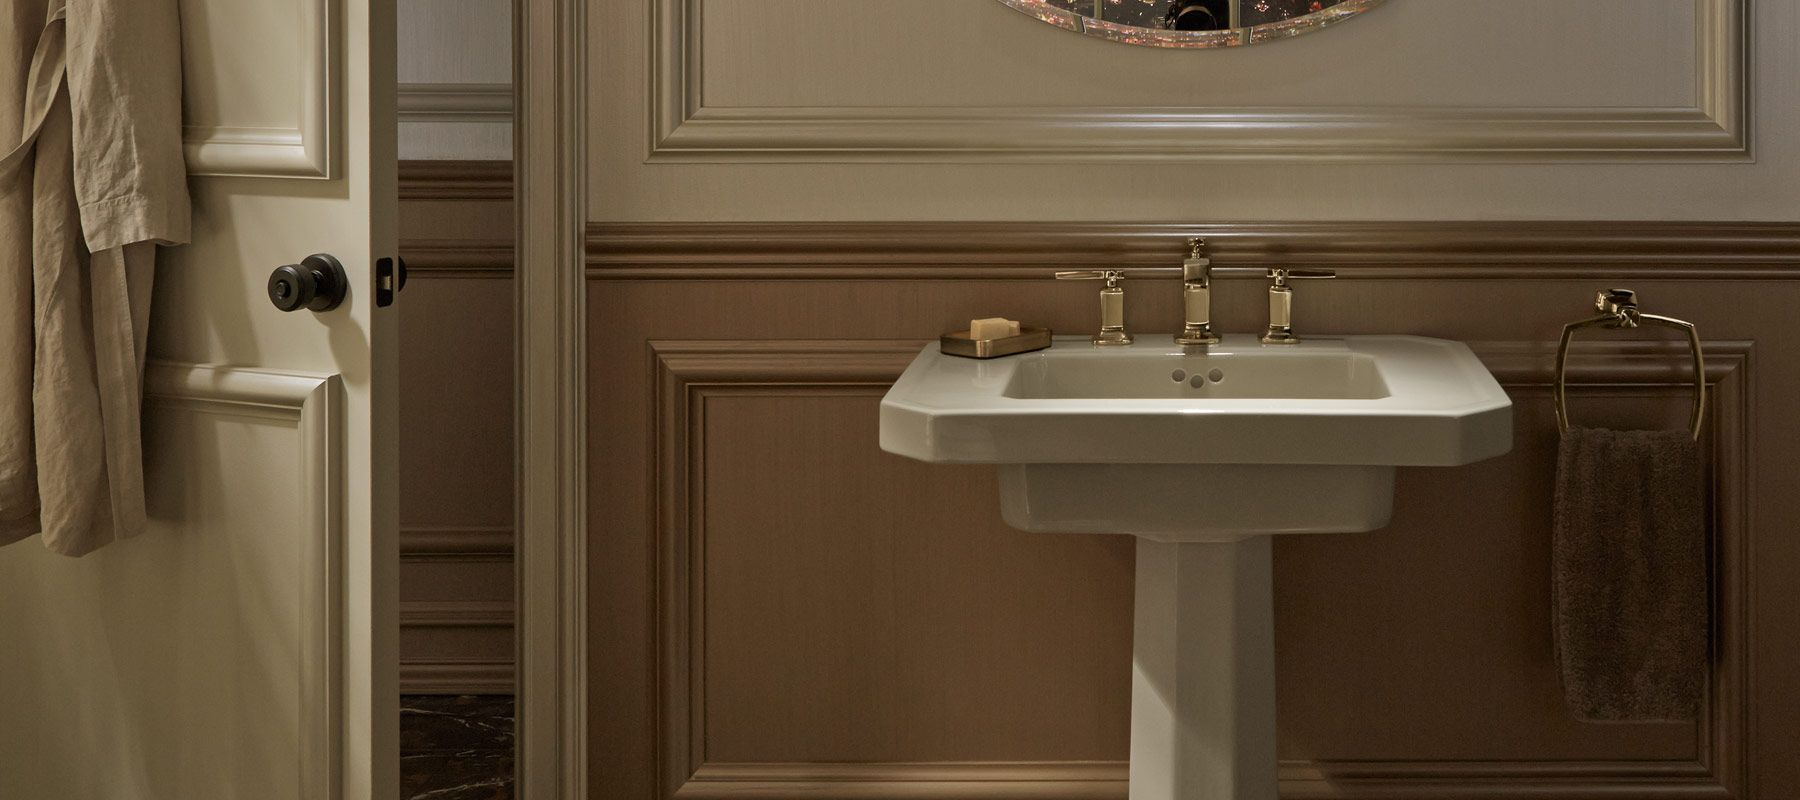 Bathroom Sinks Halifax drop-in bathroom sinks | bathroom | kohler